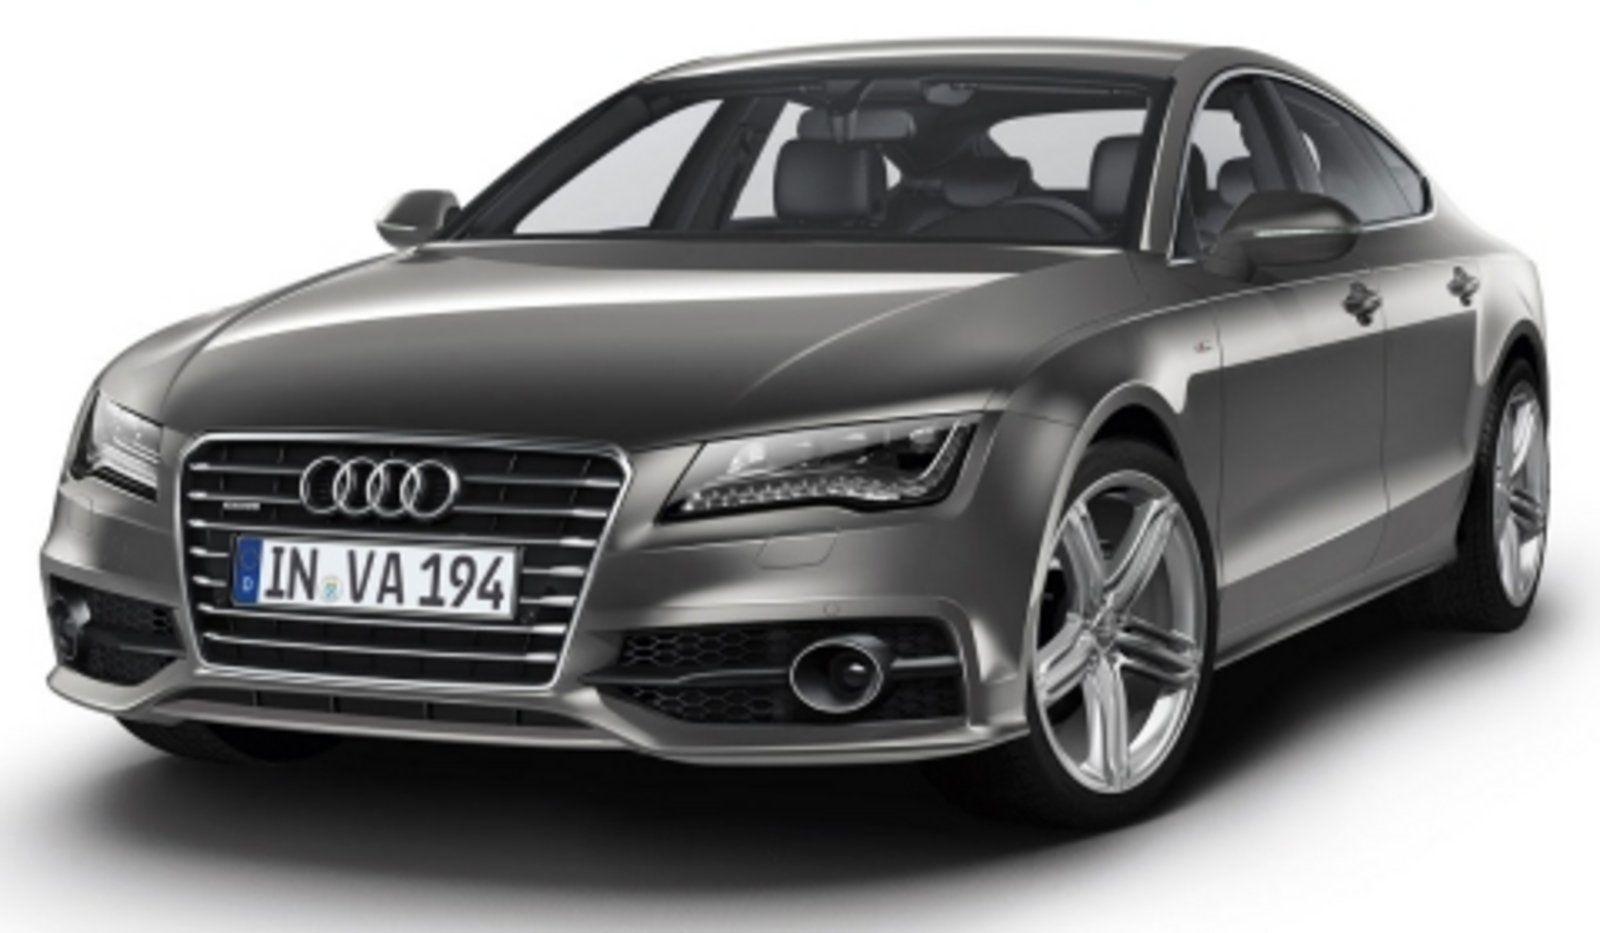 2011 audi a7 sportback s limited edition review gallery top speed. Black Bedroom Furniture Sets. Home Design Ideas